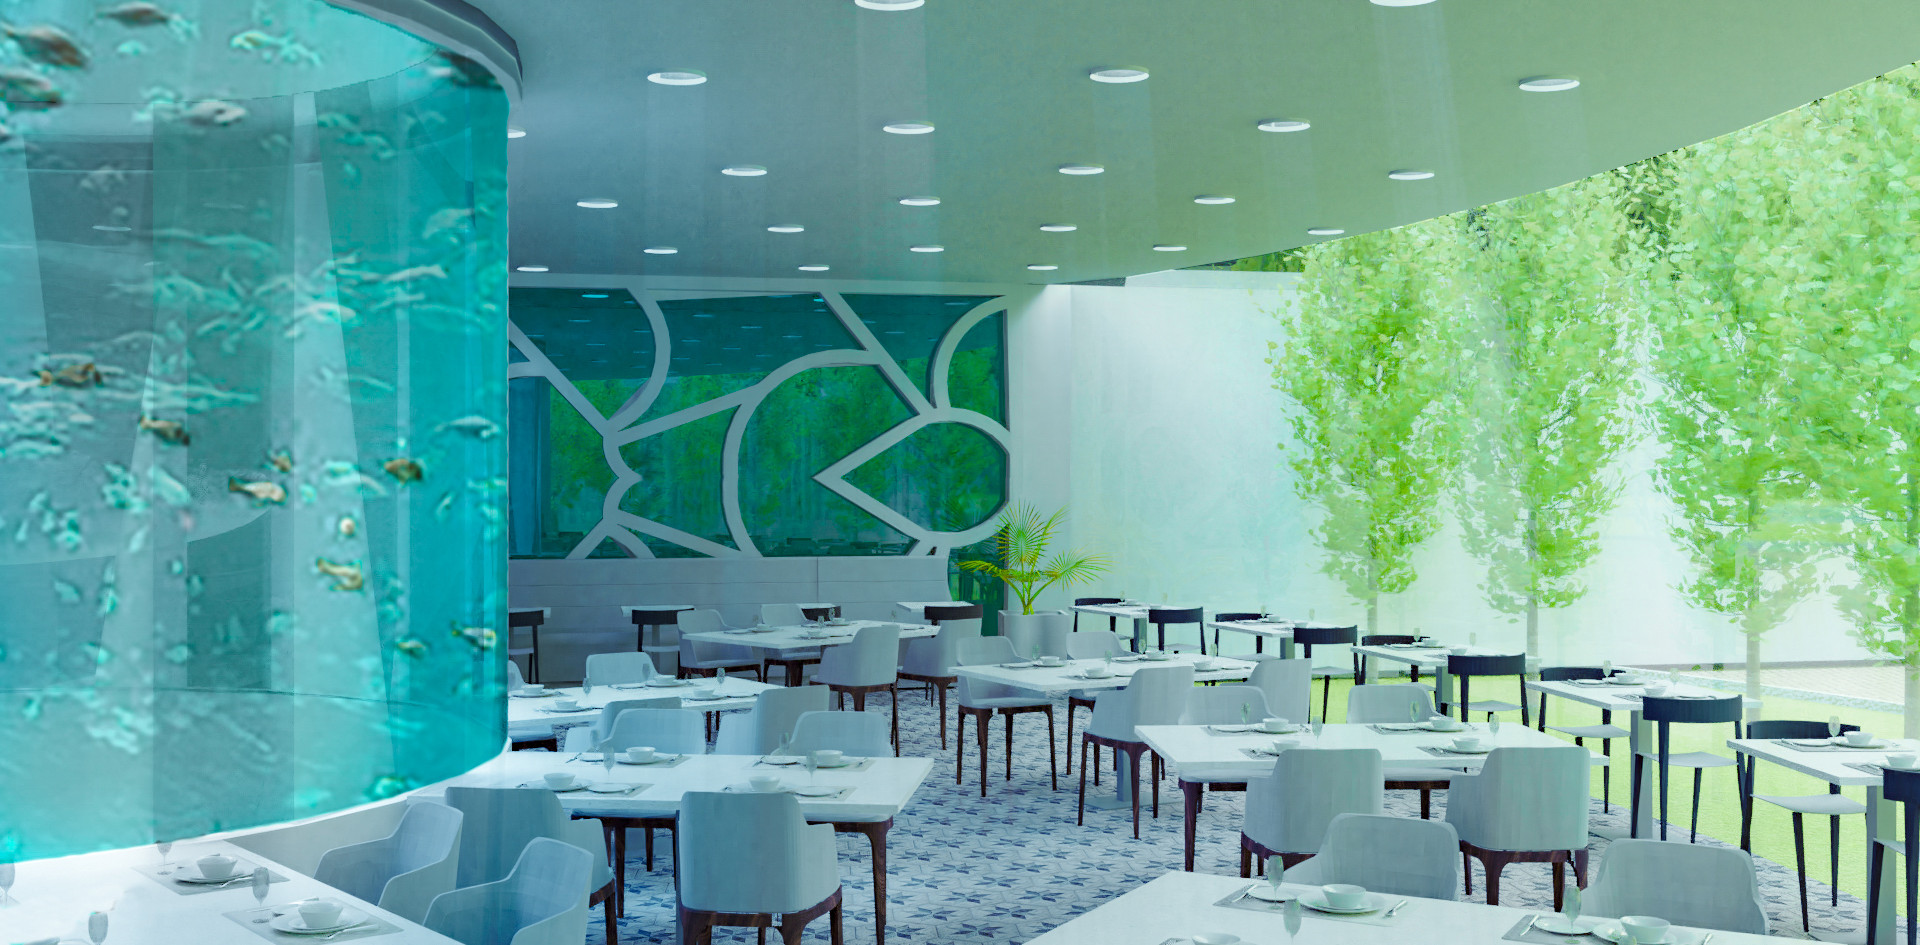 RENDER-RESTAURANTE-POS-PS-4.jpg